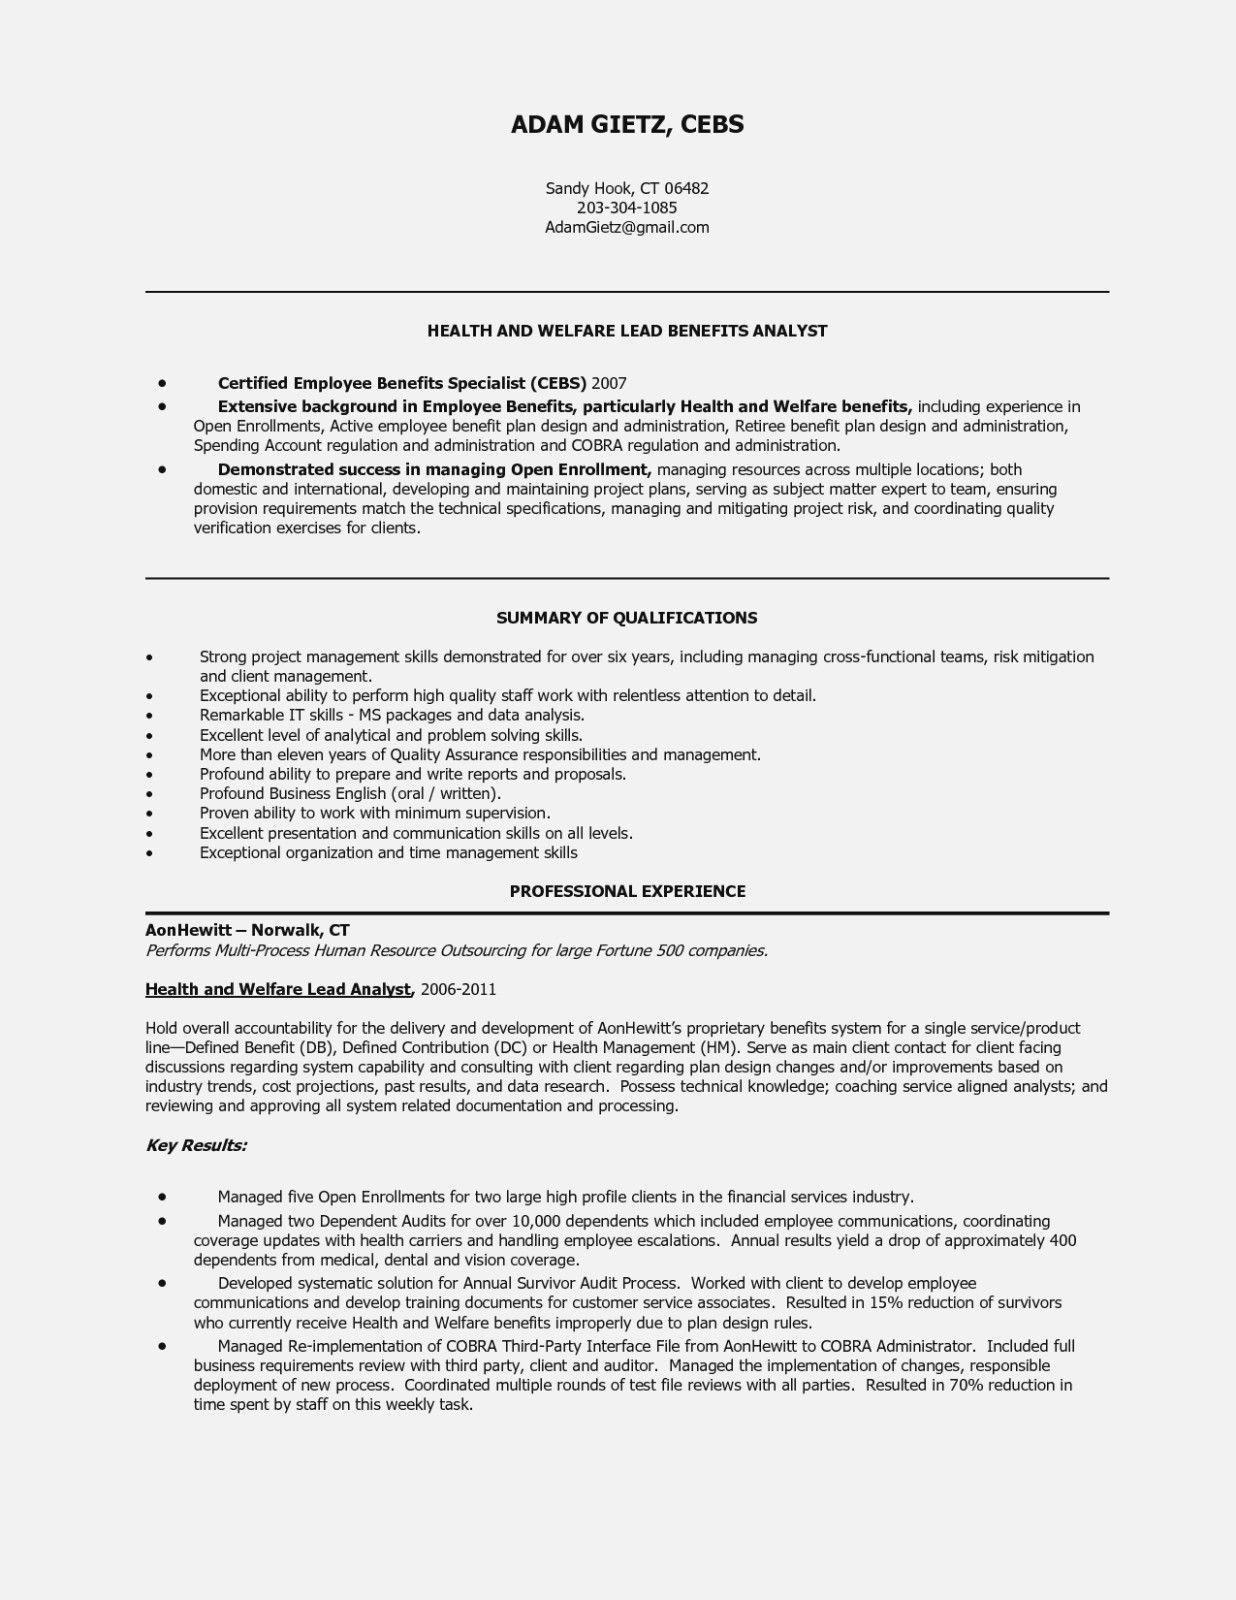 resume example awards in 2020 Resume skills, Interview tips